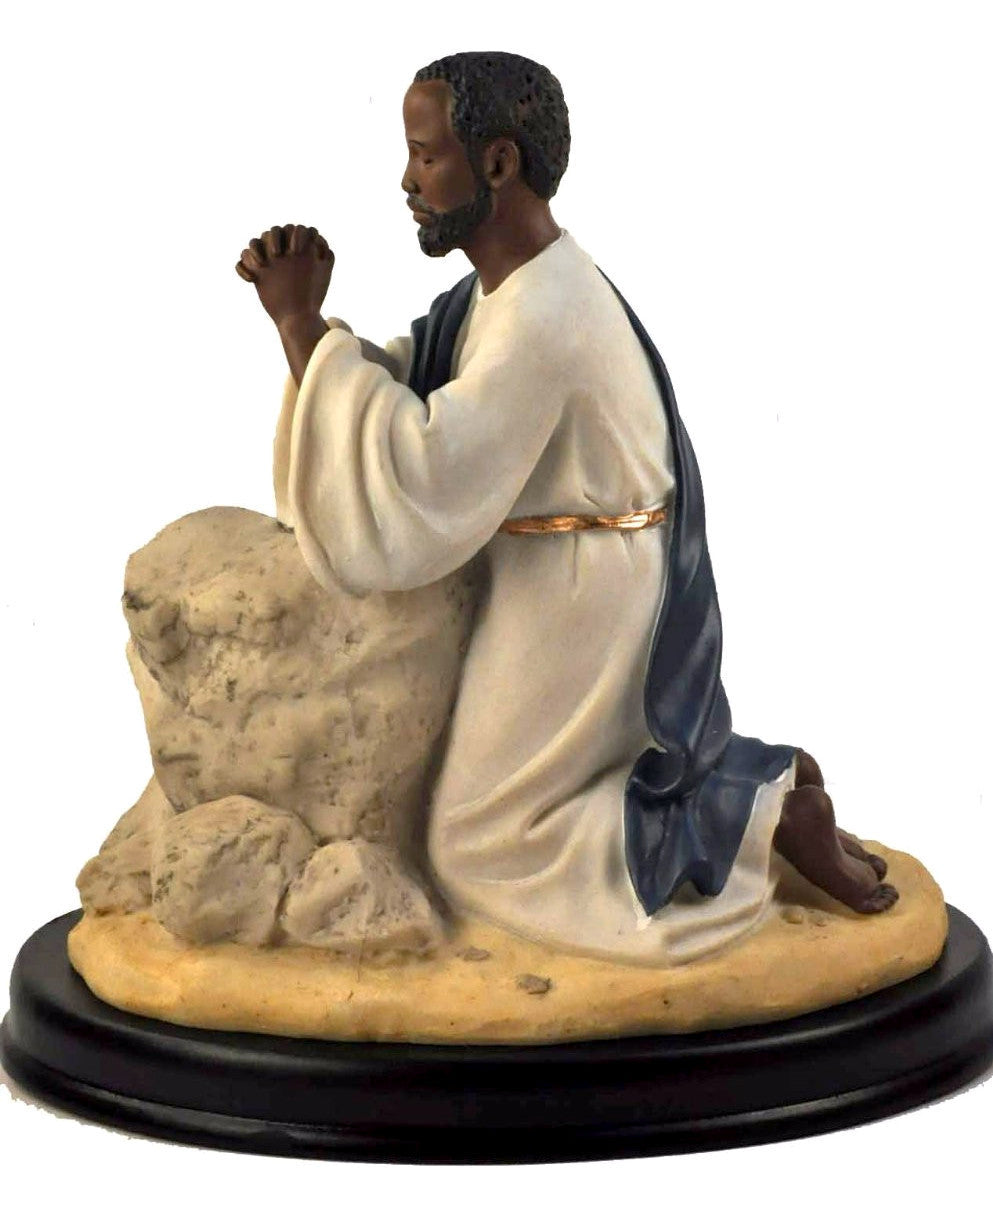 African American Jesus Praying in the Garden Figurine by Positive Image Gifts